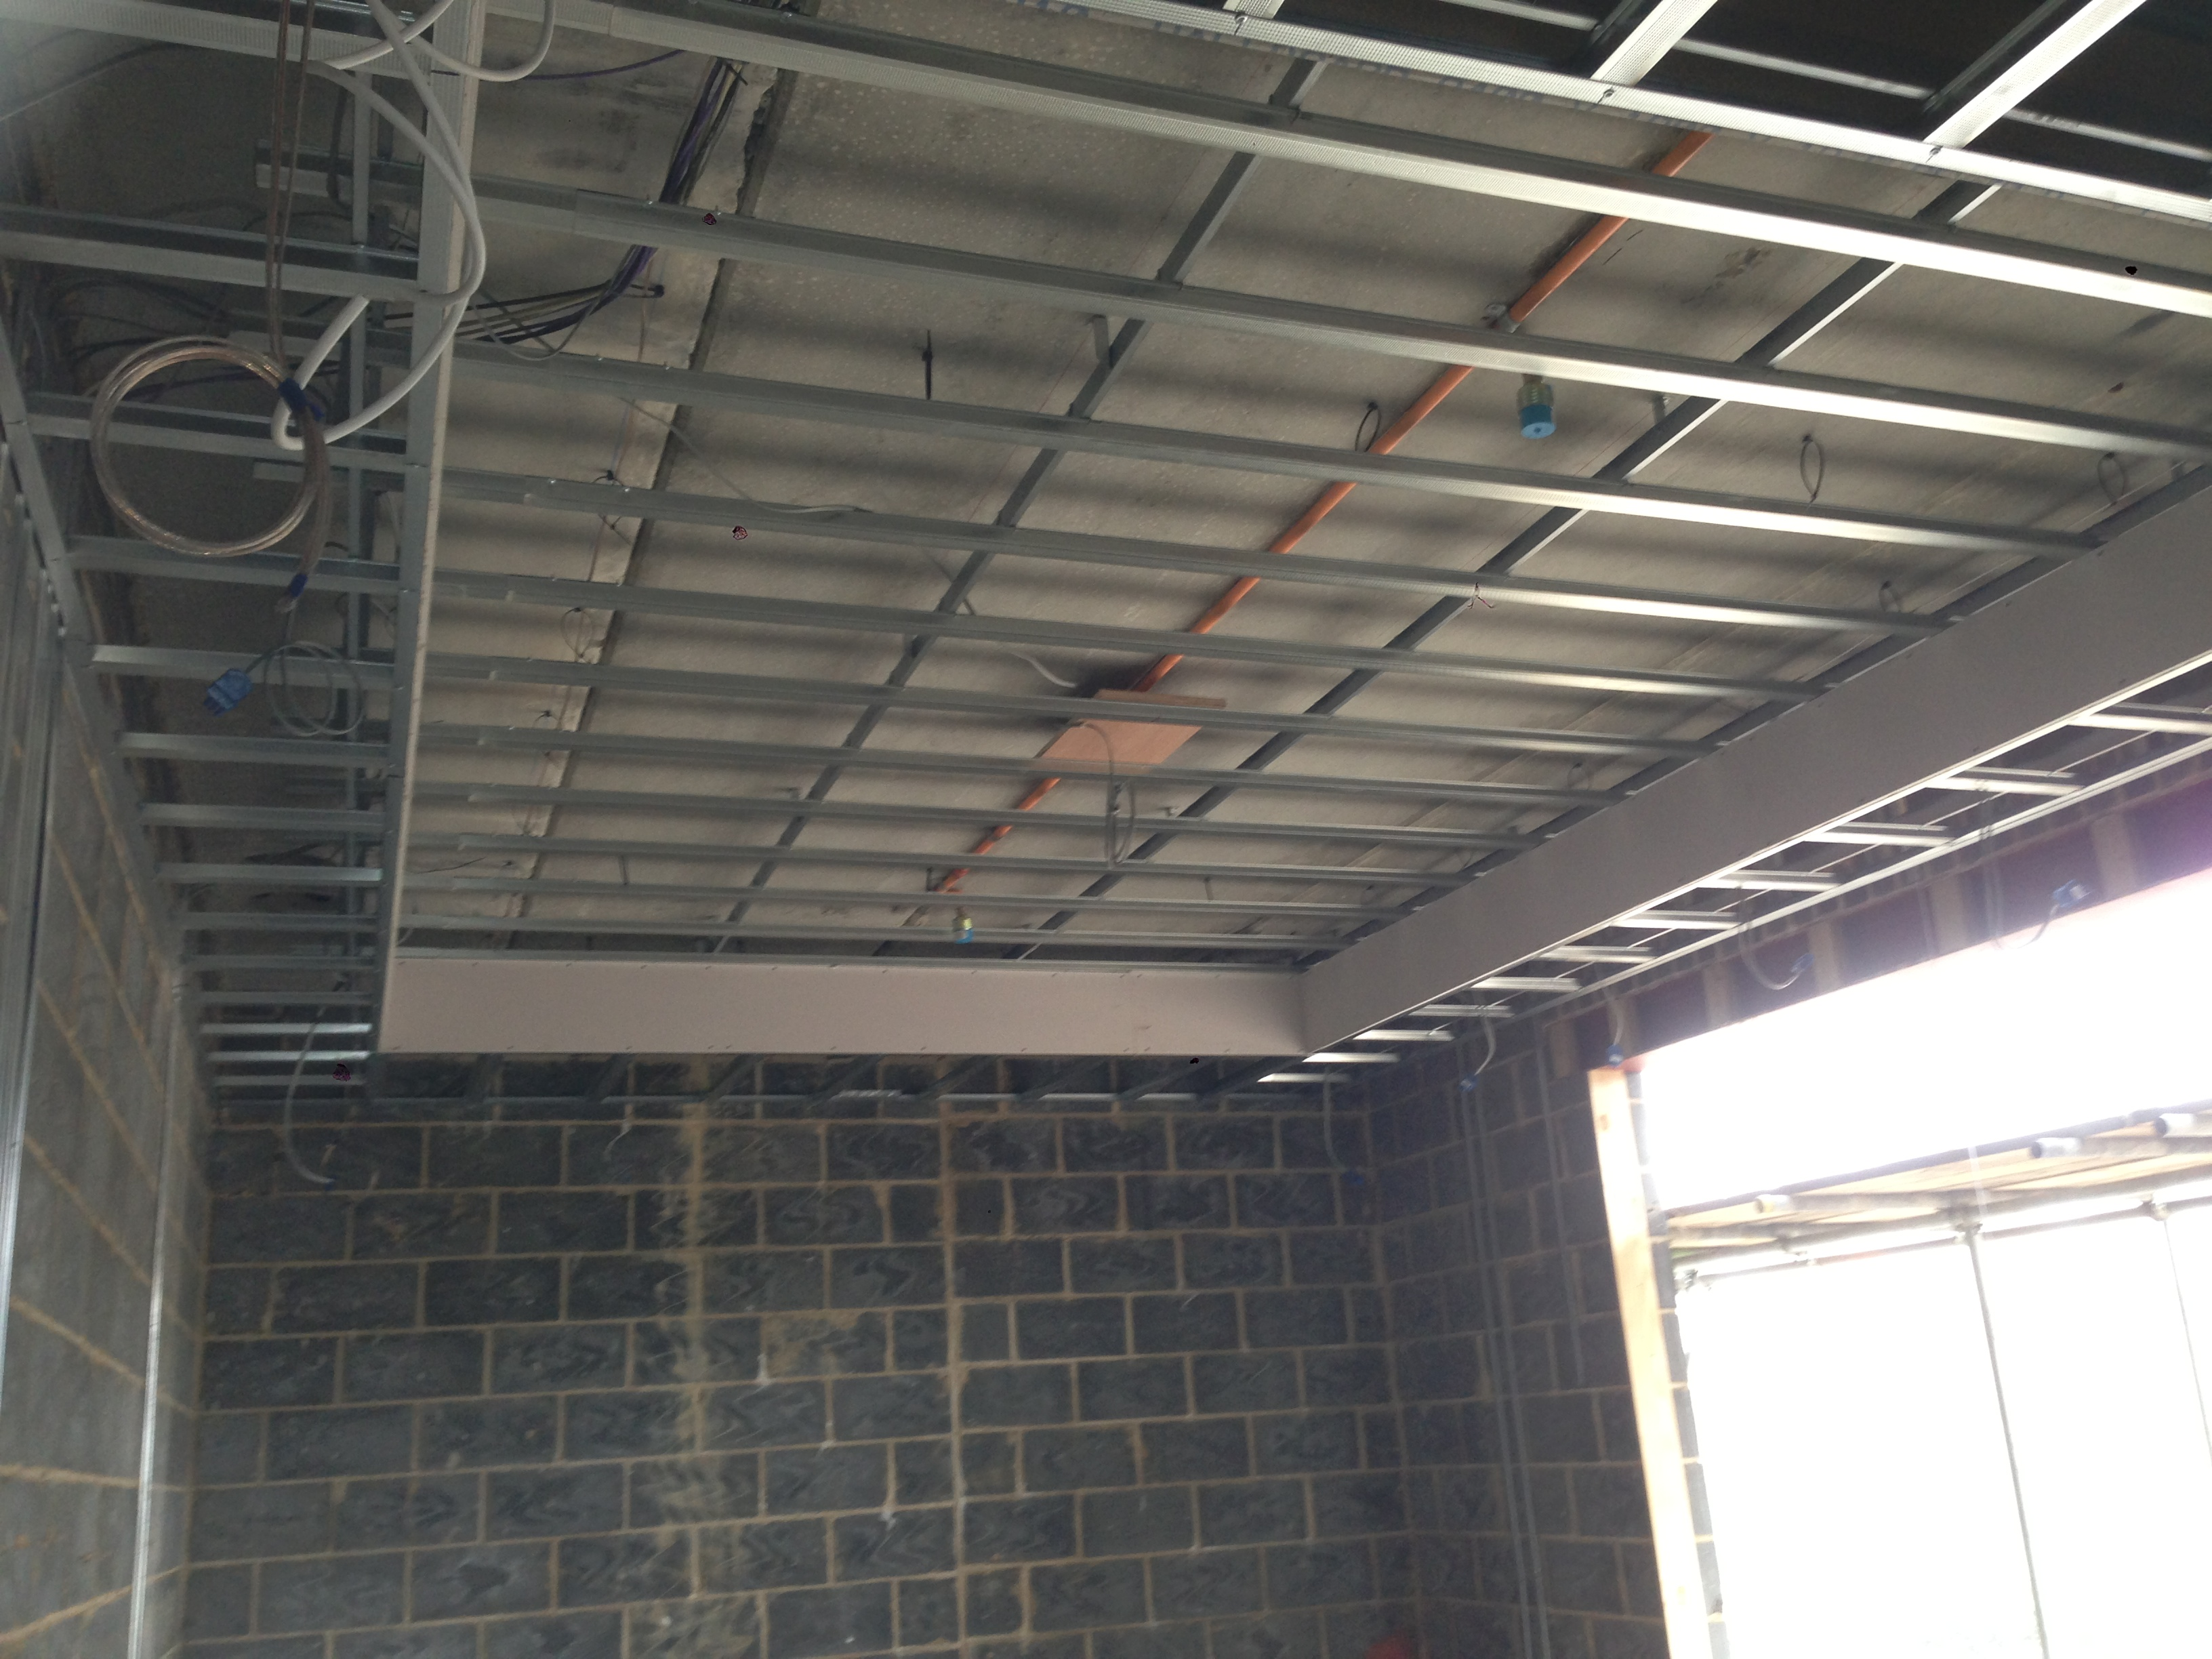 Suspended Metal Furring Grid Systems (MF) | M A Dry Lining ...